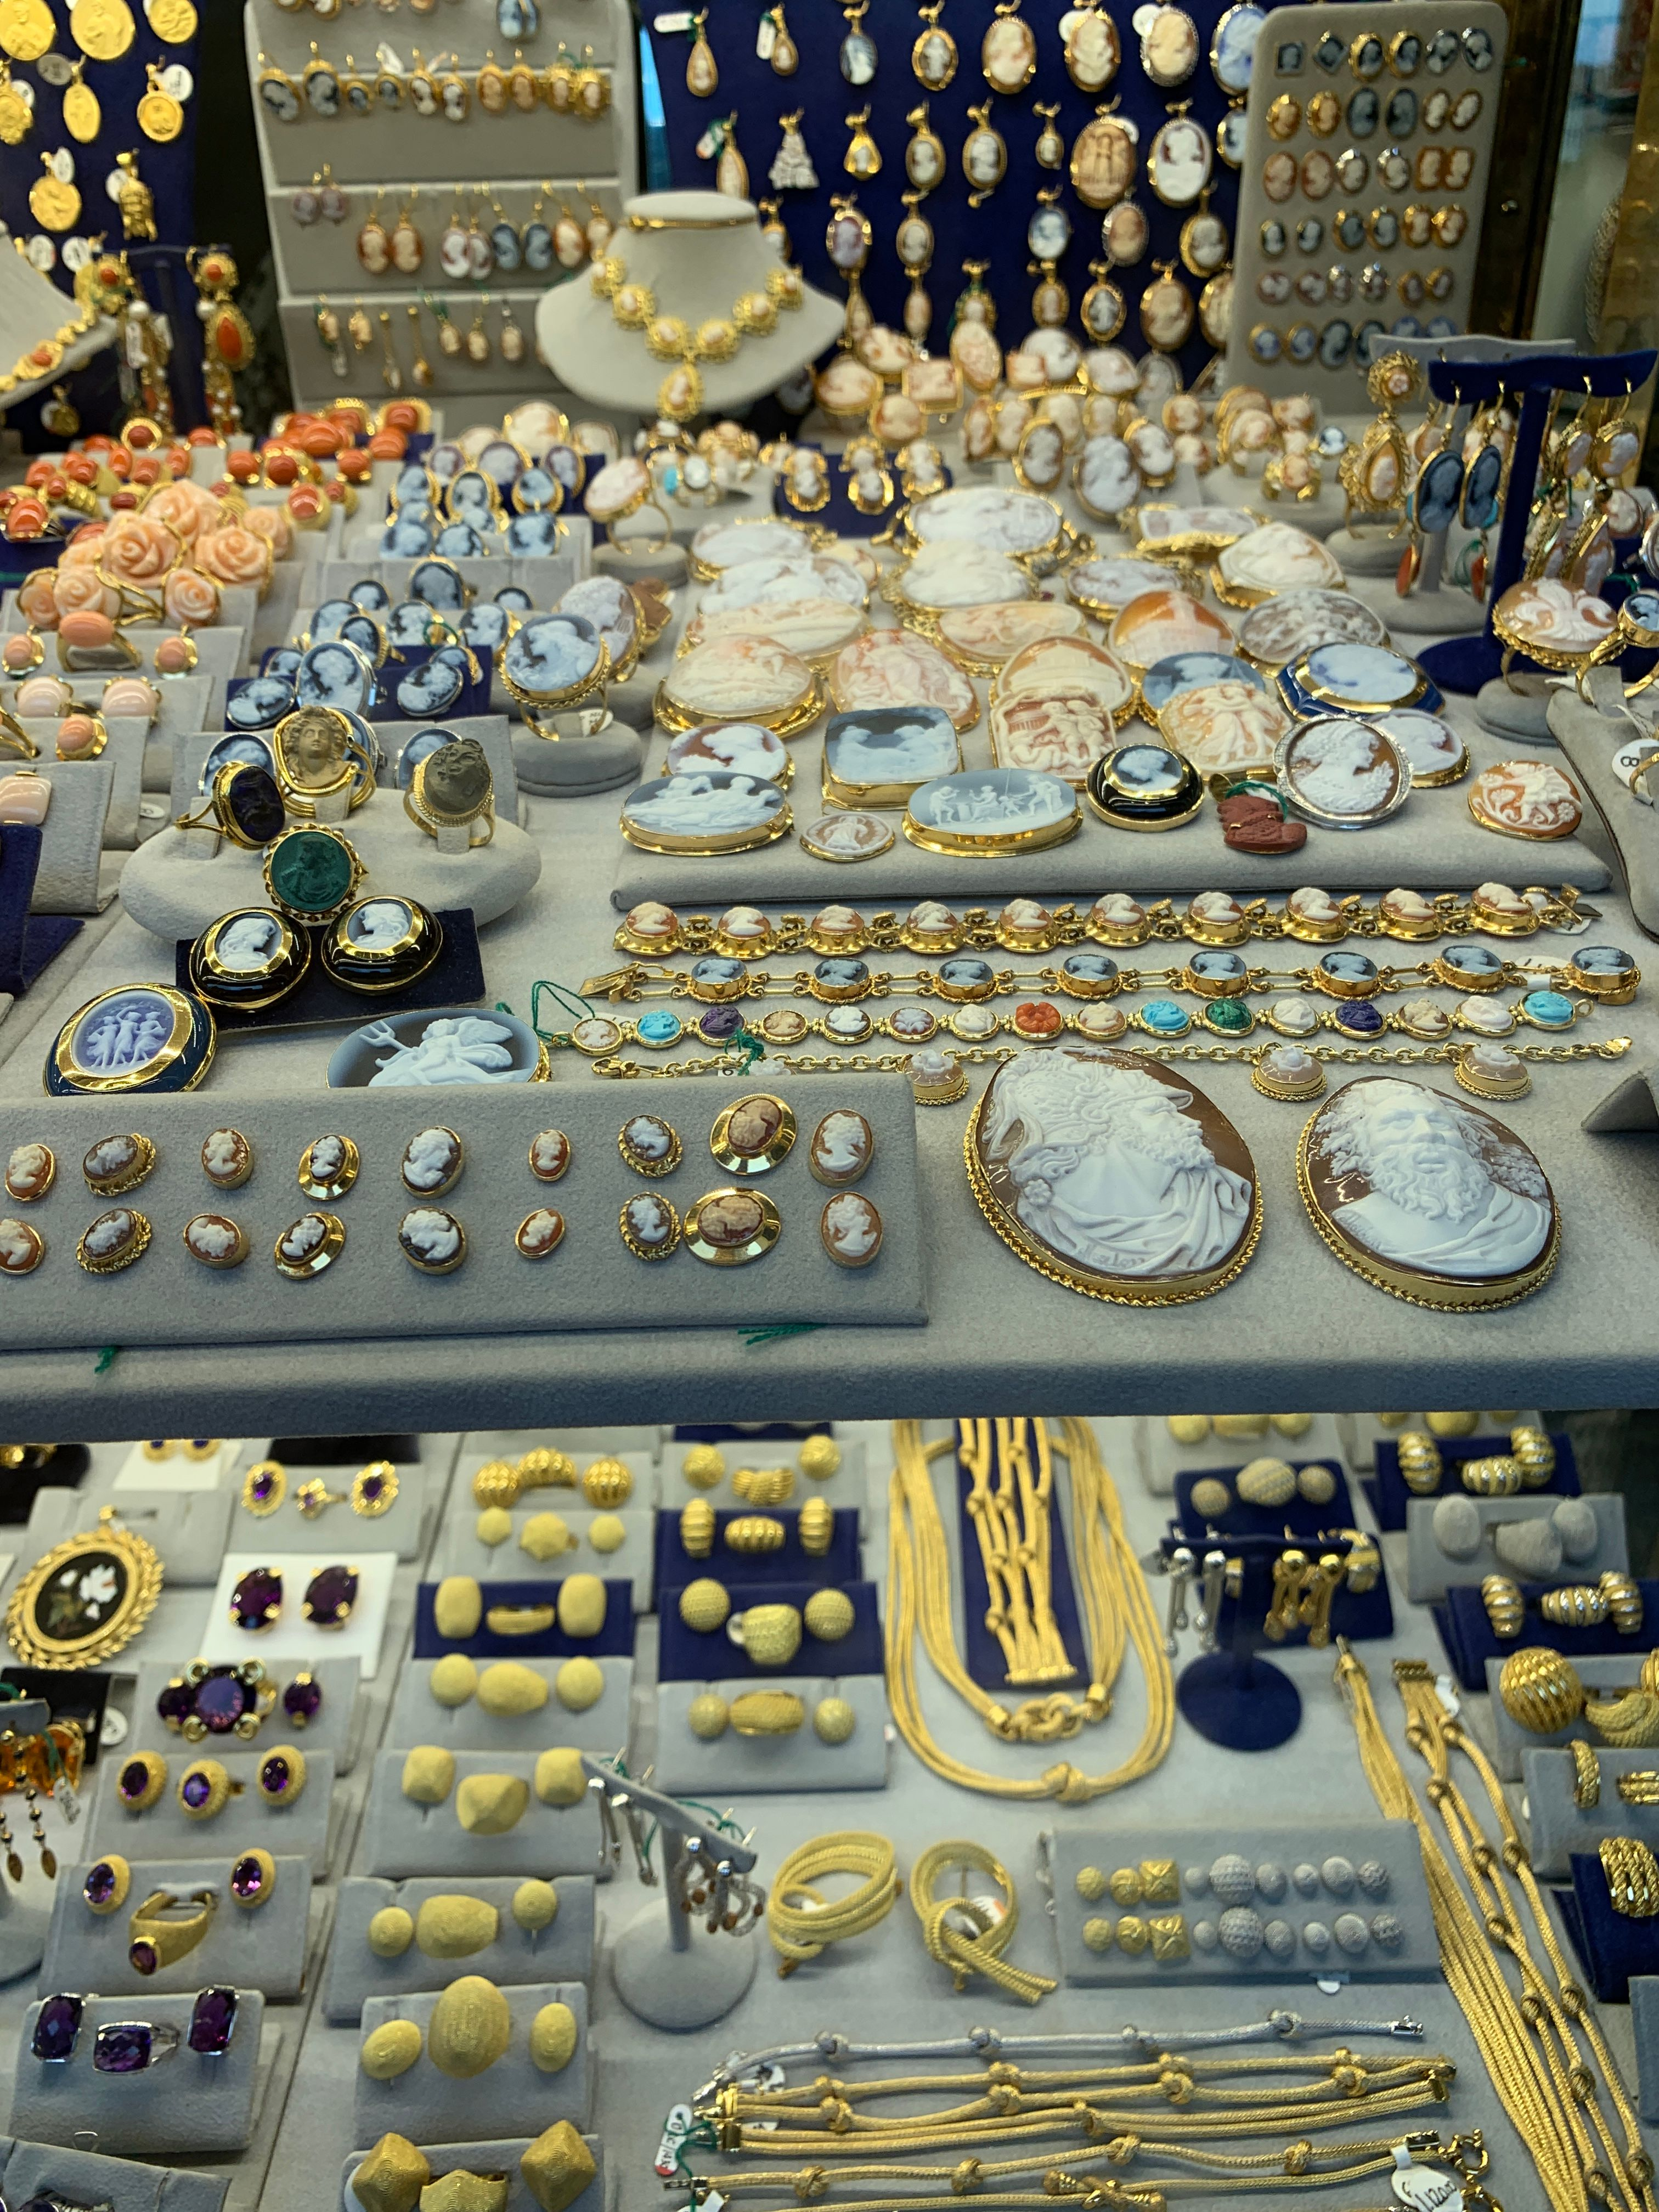 A jeweler's shop window on the Ponte Vecchio, including coral jewelry.